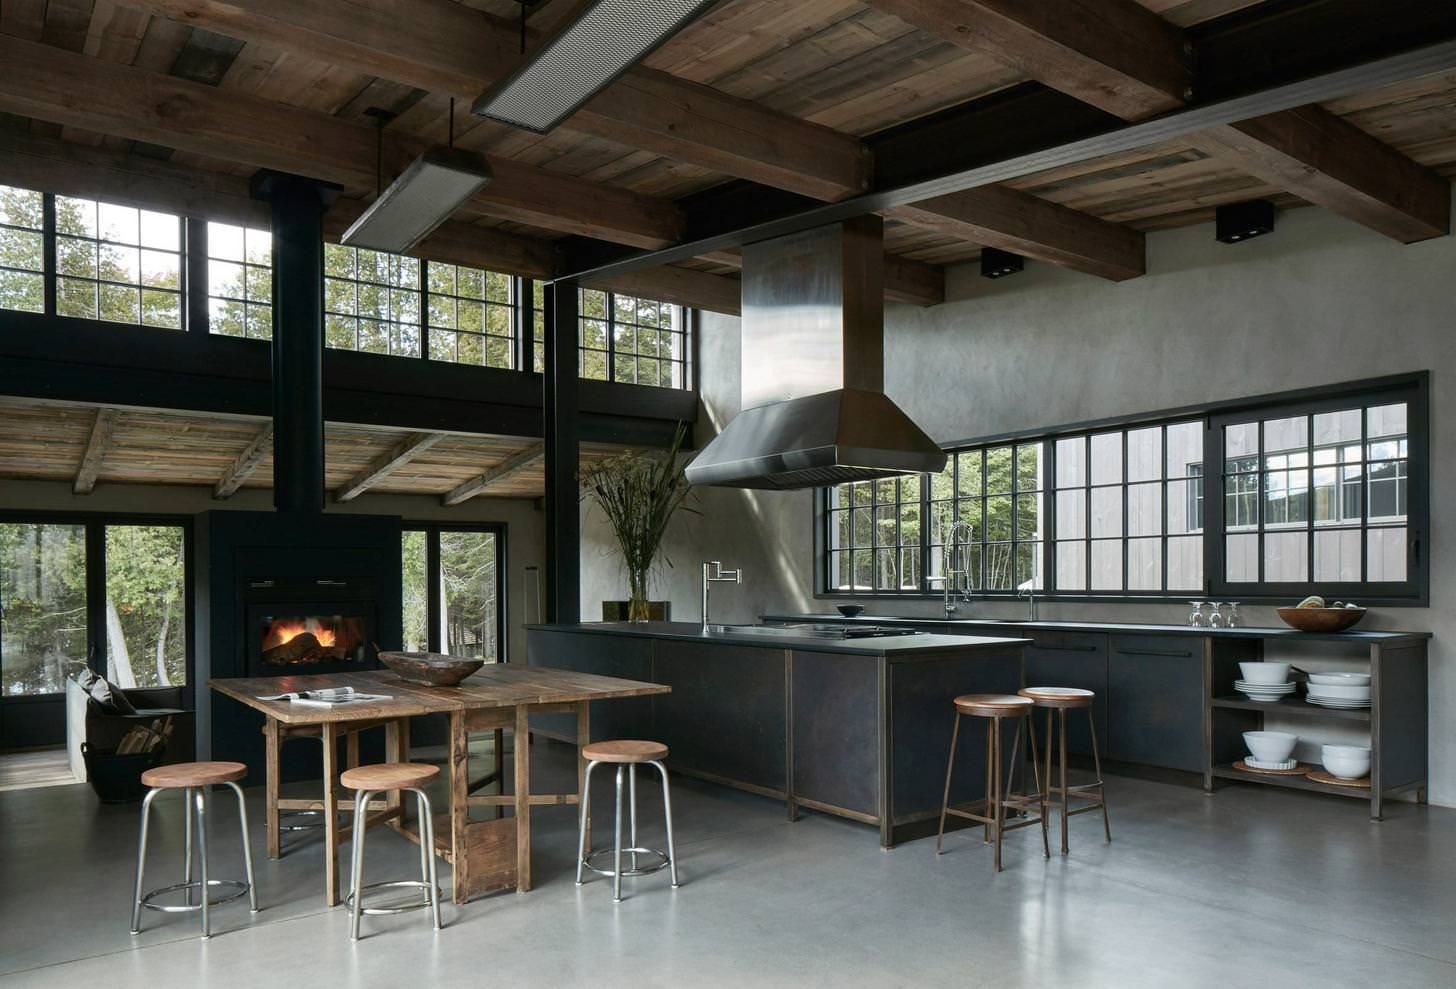 Rustic industrial kitchen/dining space in a large open